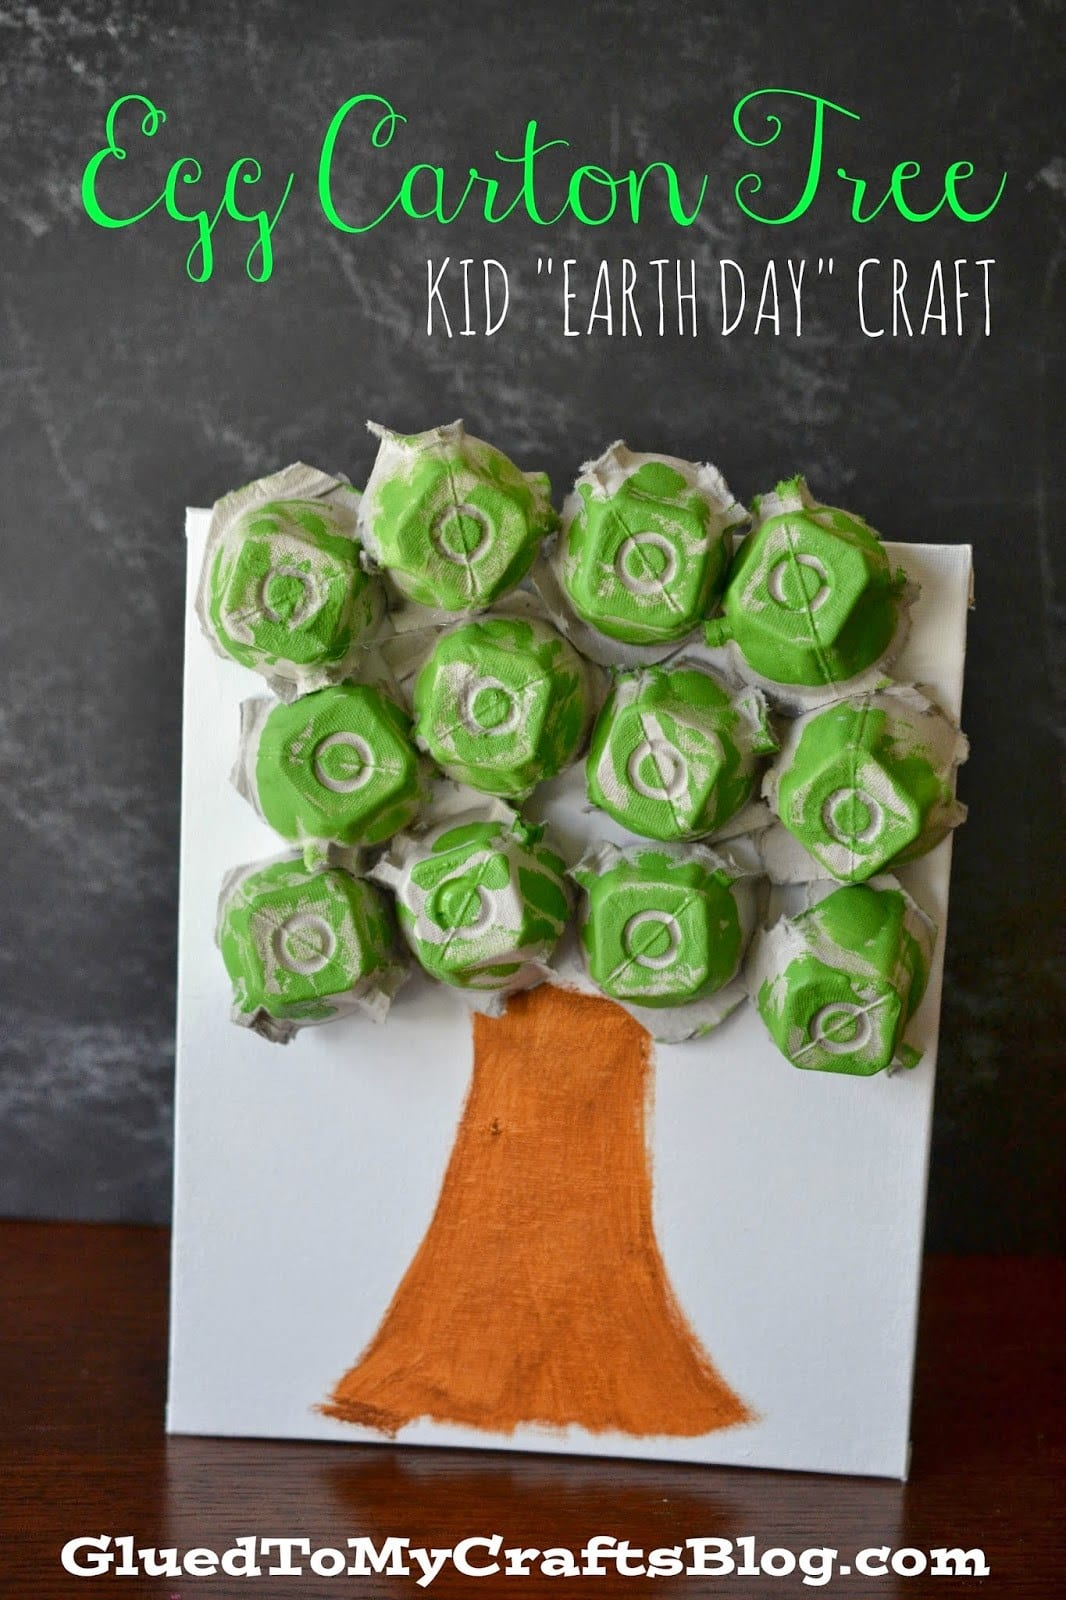 hight resolution of 30 Earth Day Crafts With Recycled Materials - WeAreTeachers